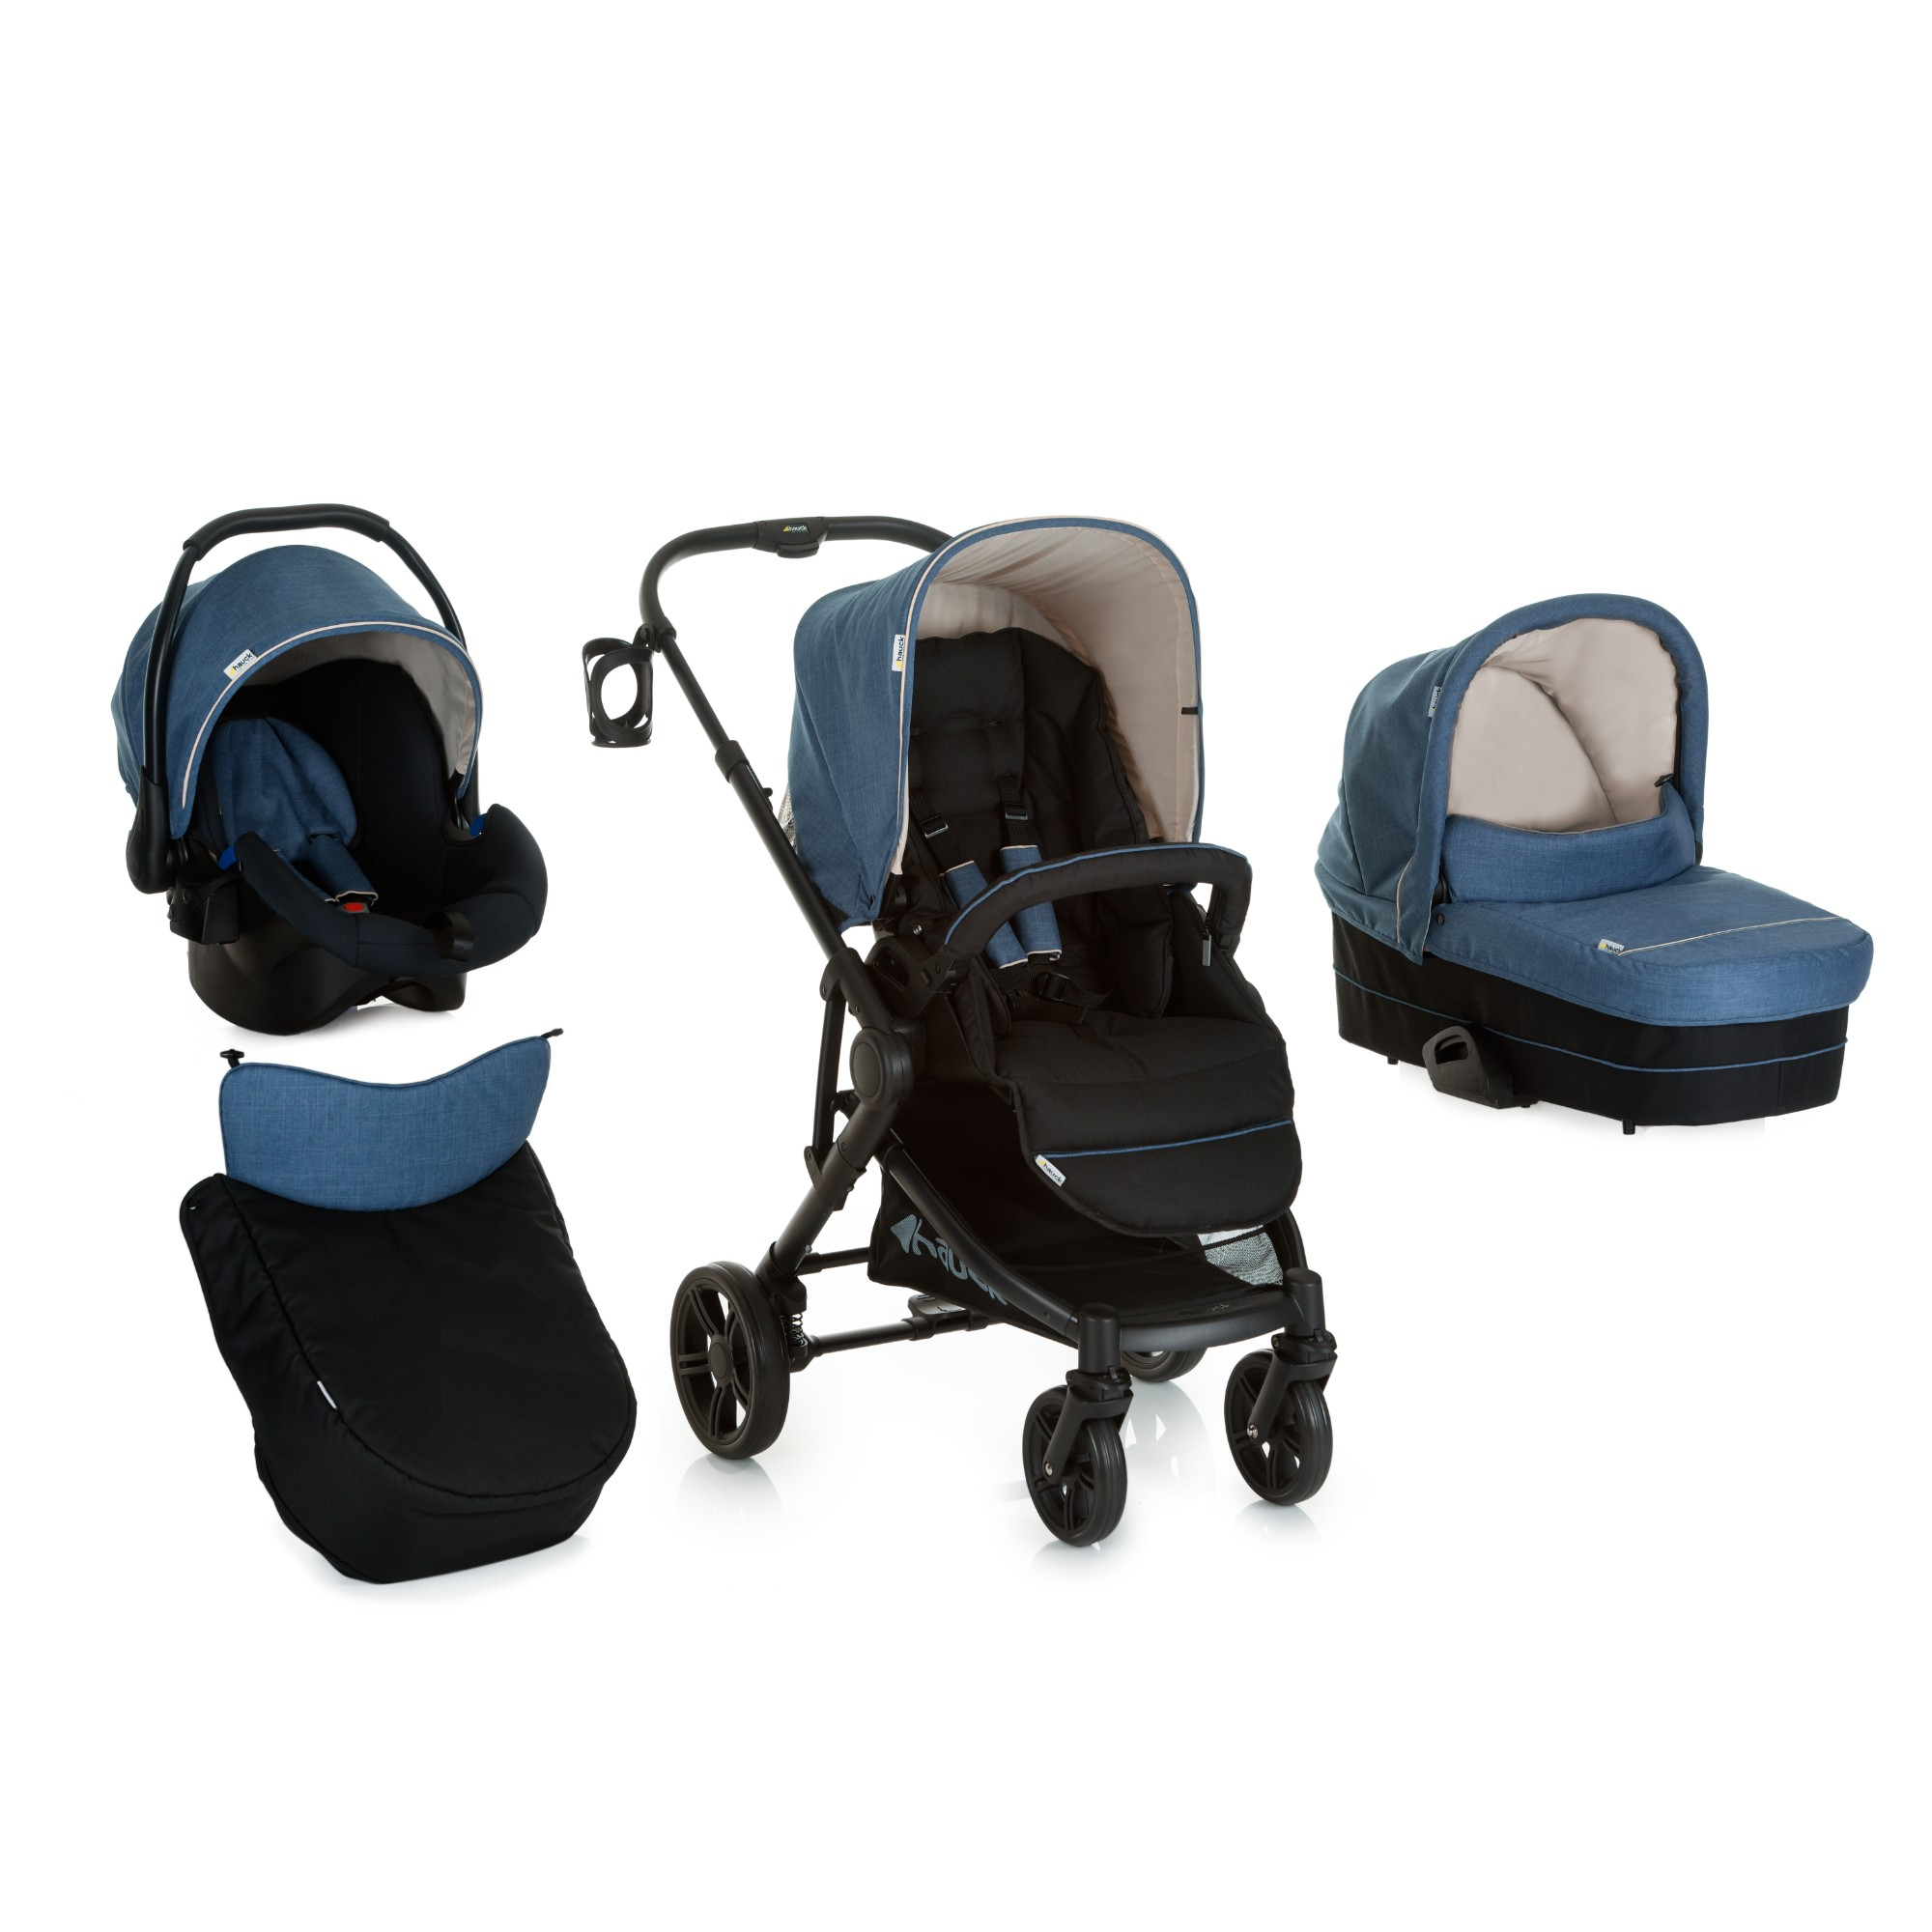 Stroller Travel System Ebay Details About Hauck Atlantic Plus Trio Travel System